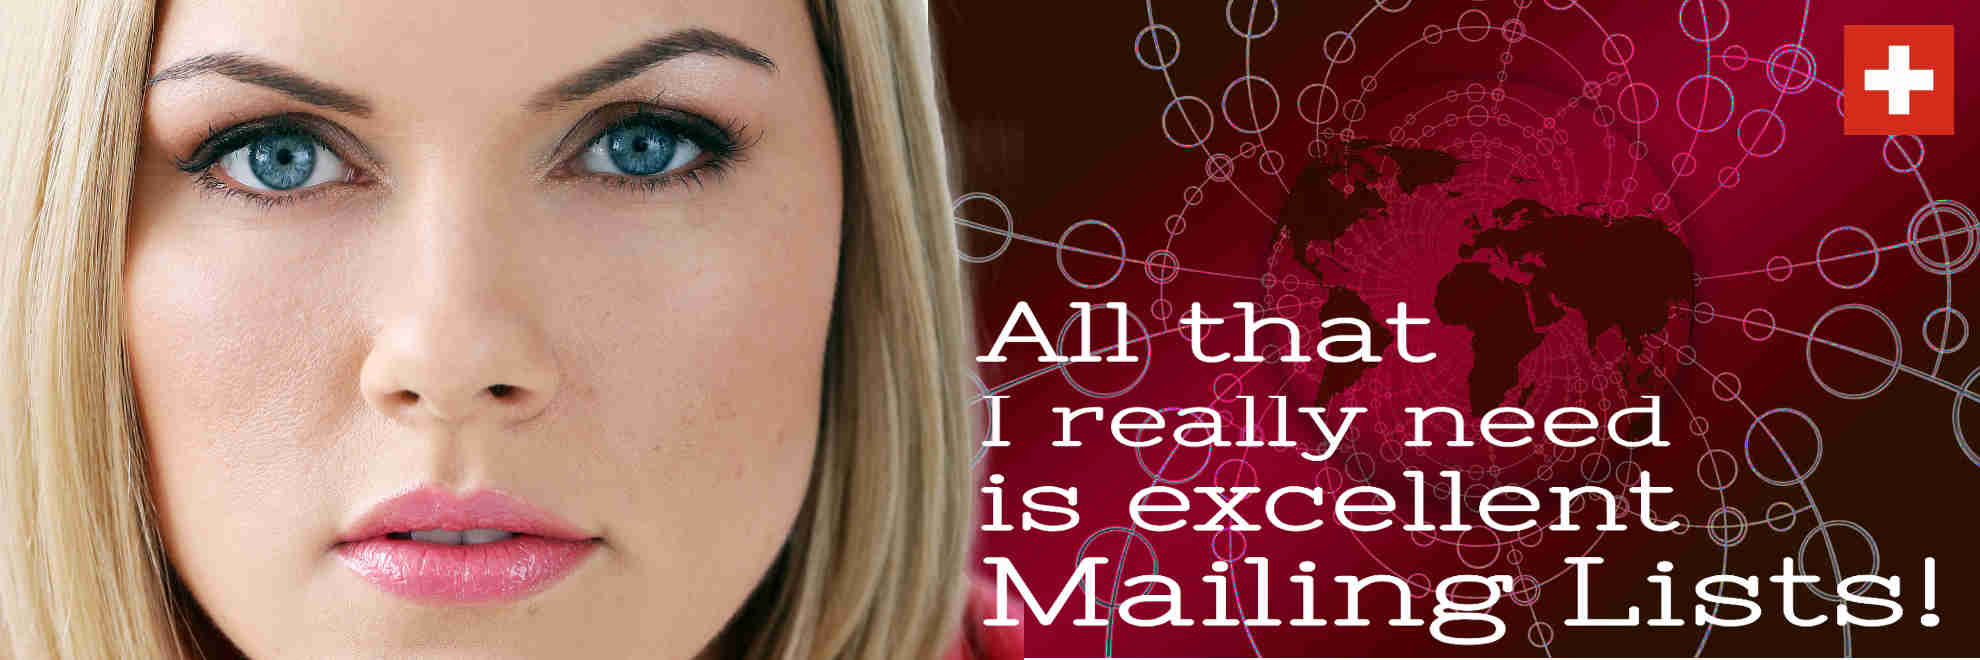 Mailing lists worldwide for direct mail, email and telephone marketing